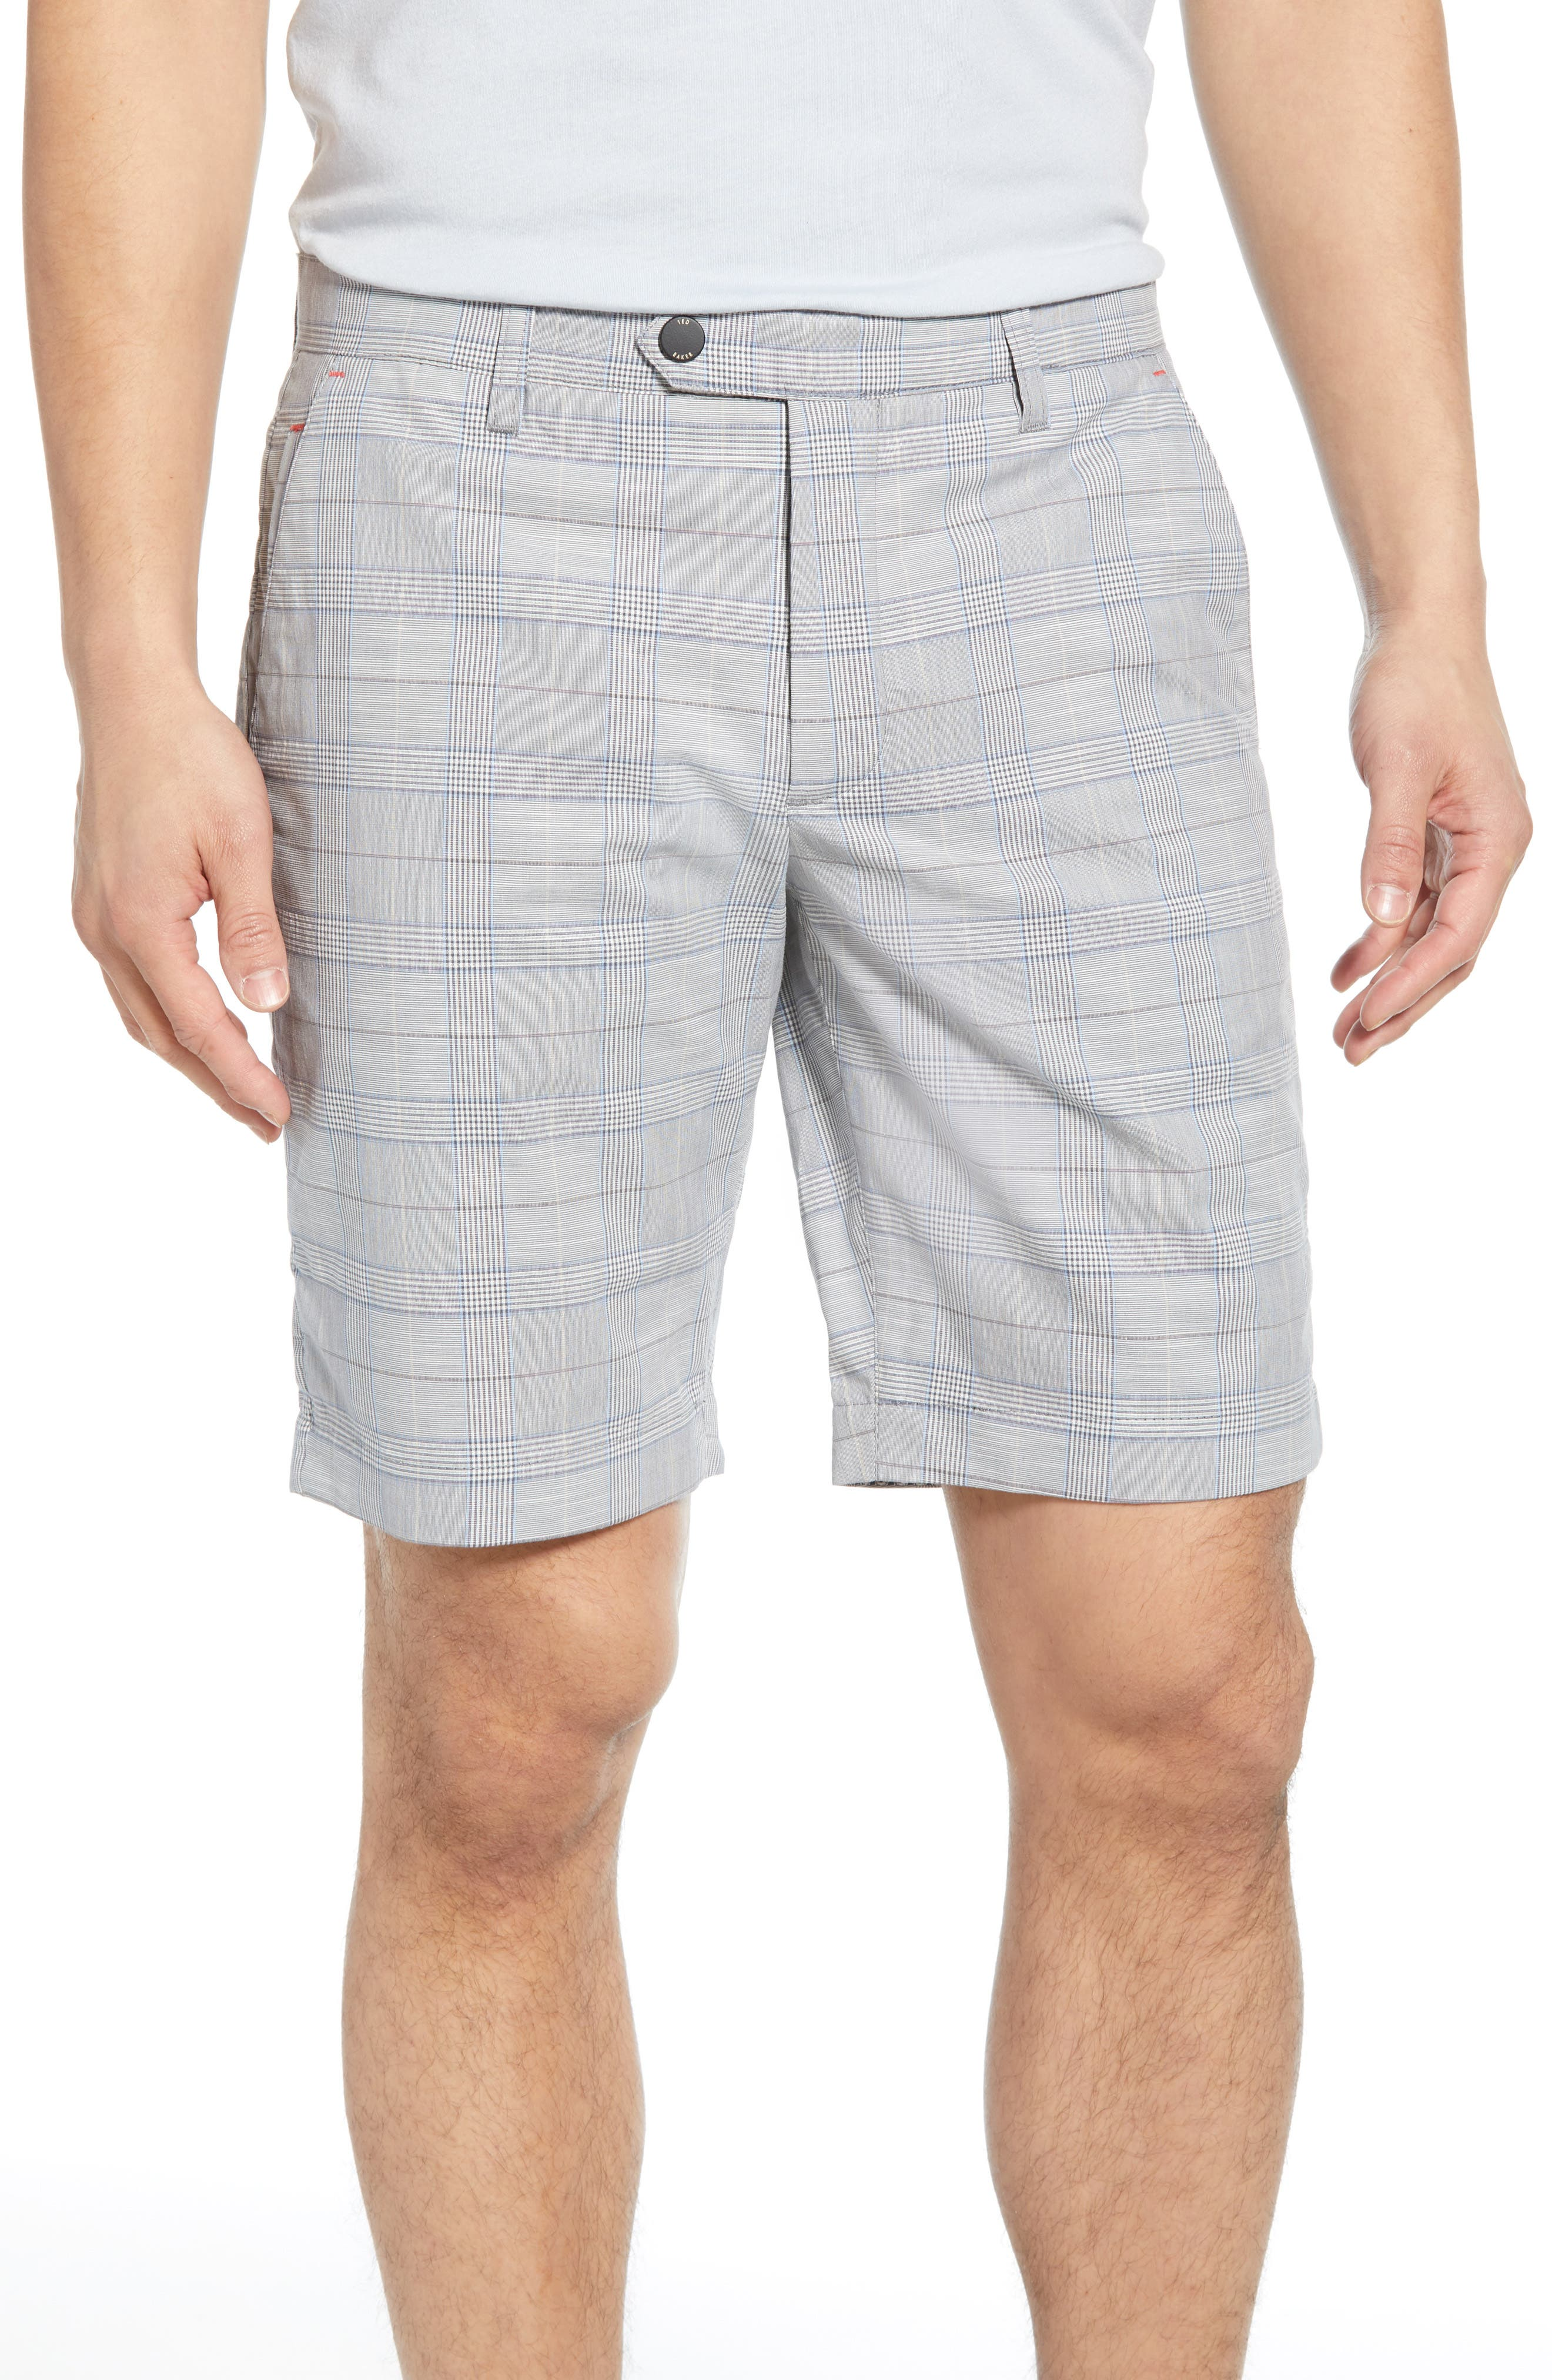 TED BAKER LONDON Easiee Slim Fit Check Golf Shorts, Main, color, GREY